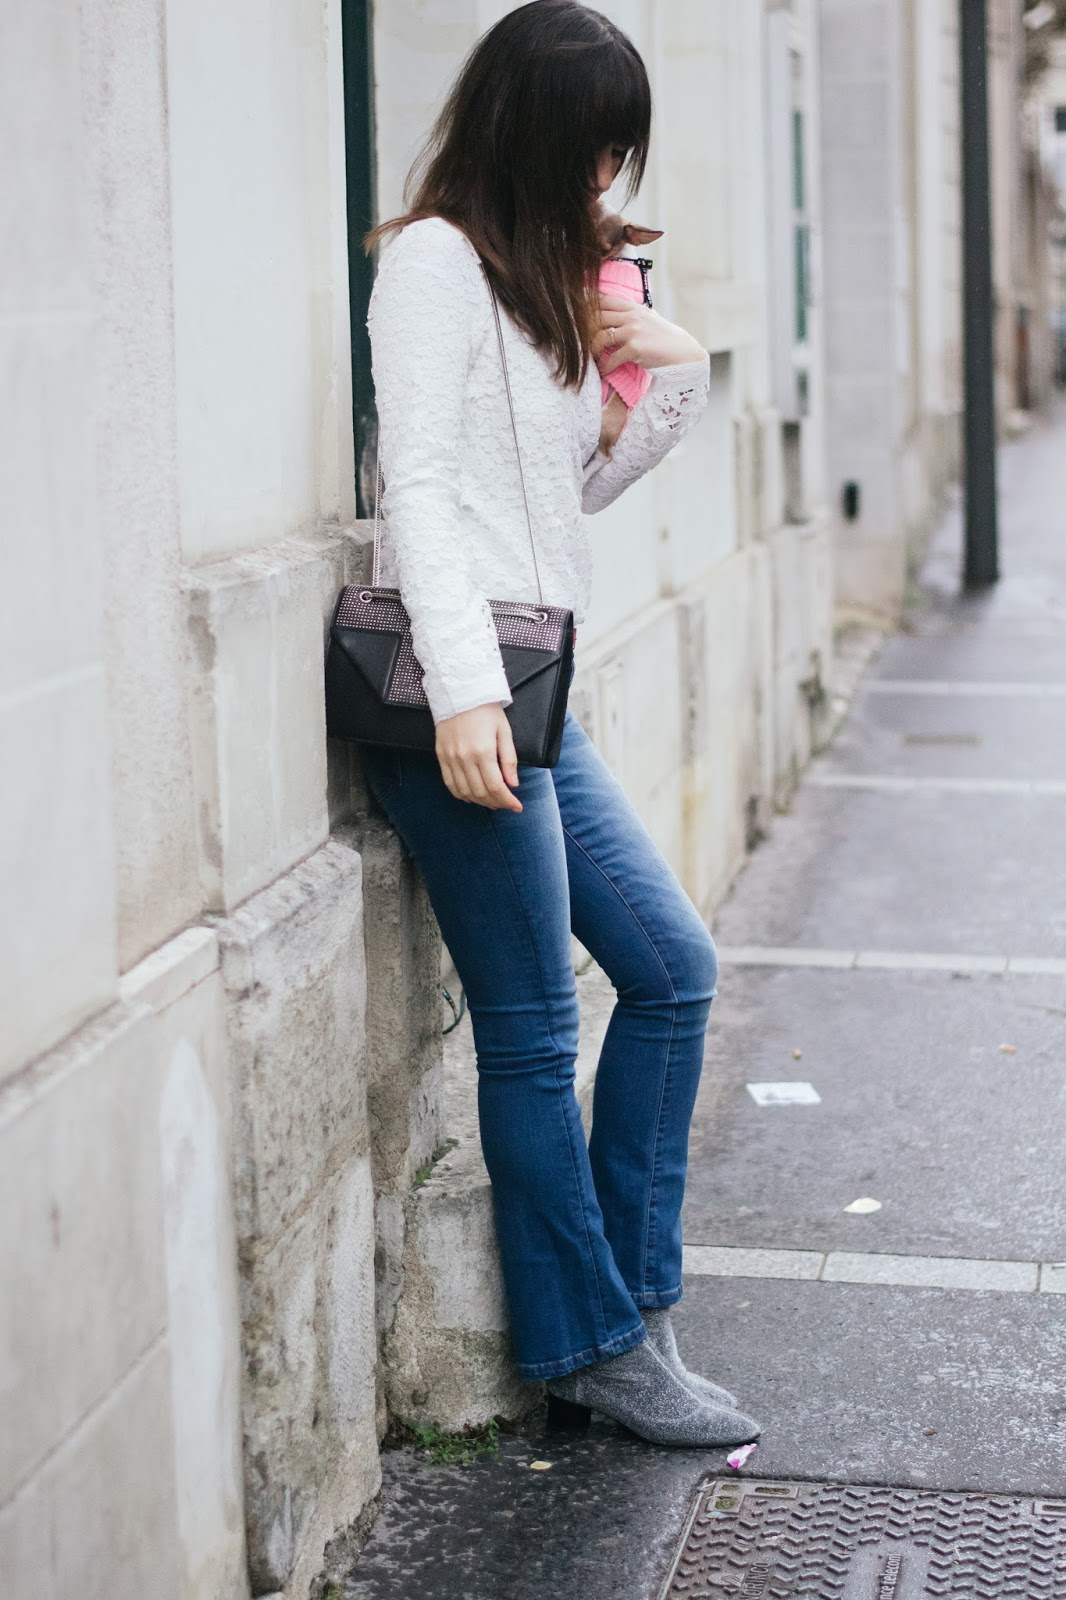 Parisian fashion blogger, style, look, mode, paris, promod, jeans, flared jeans